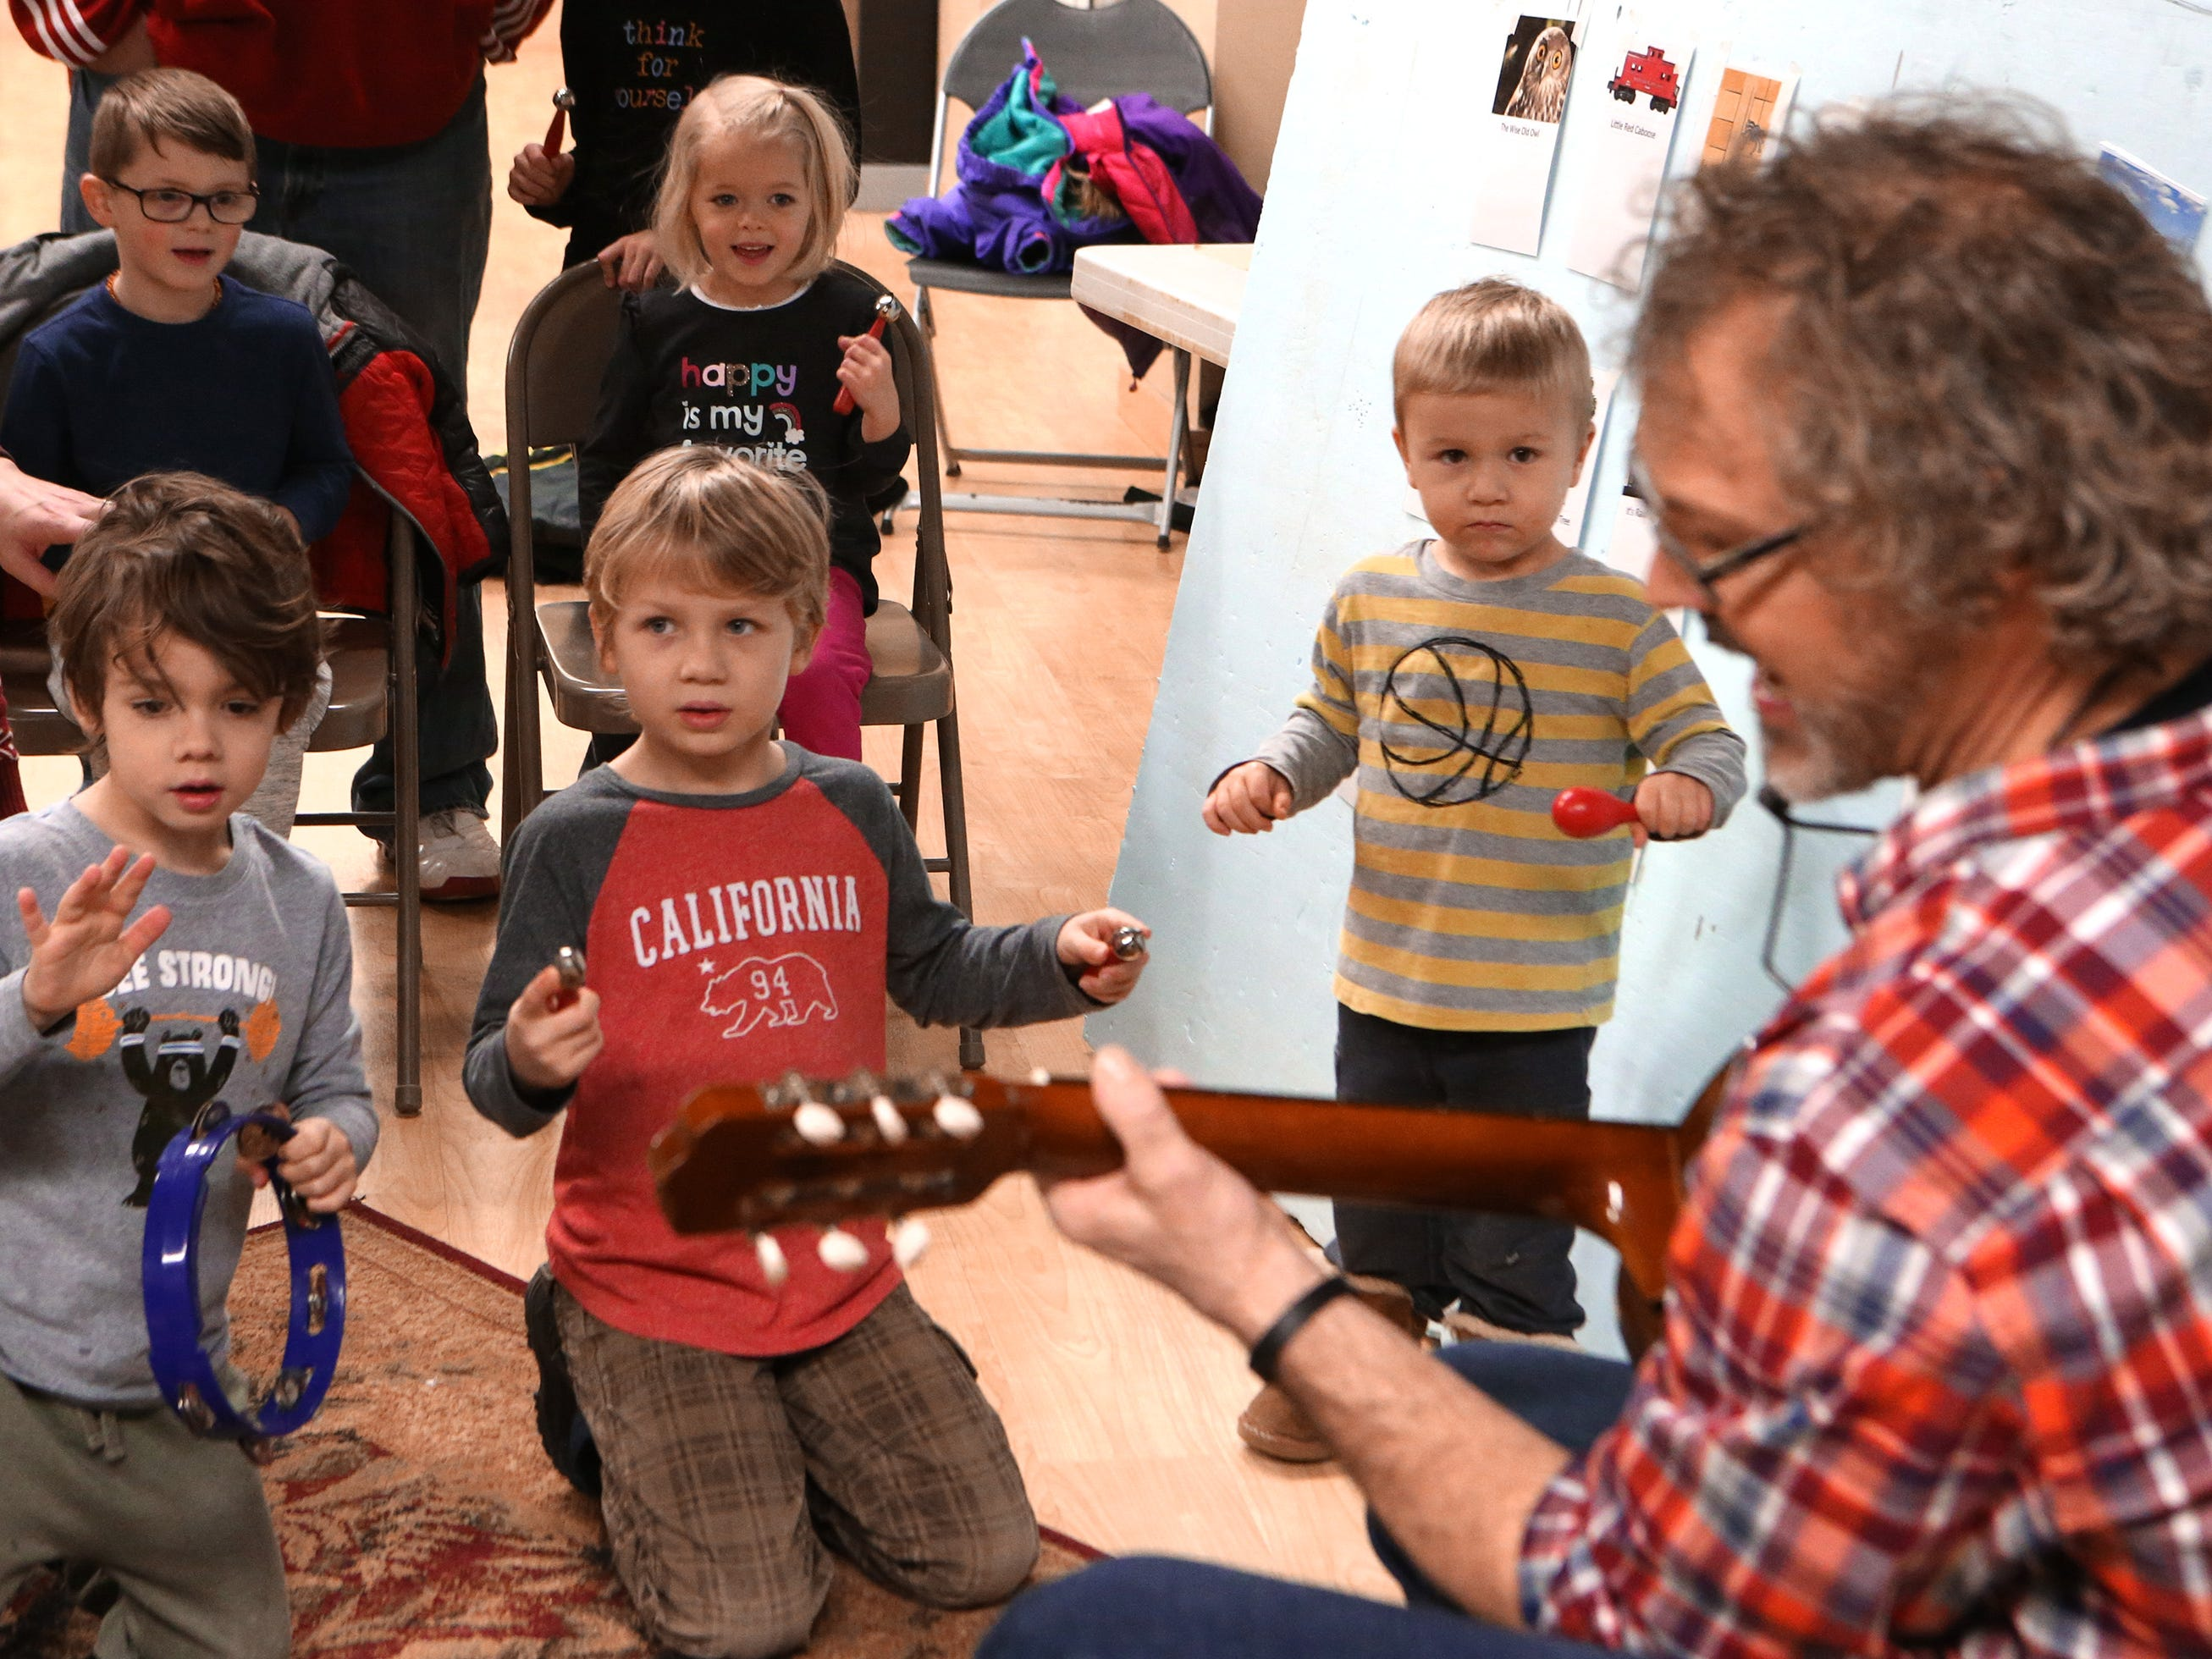 Children play hand instruments along with Nick Meske during a free parent and child music class on Jan. 17 as a promotion for a six-week class to be offered through the Oconomowoc Recreation Department at the Community Center.